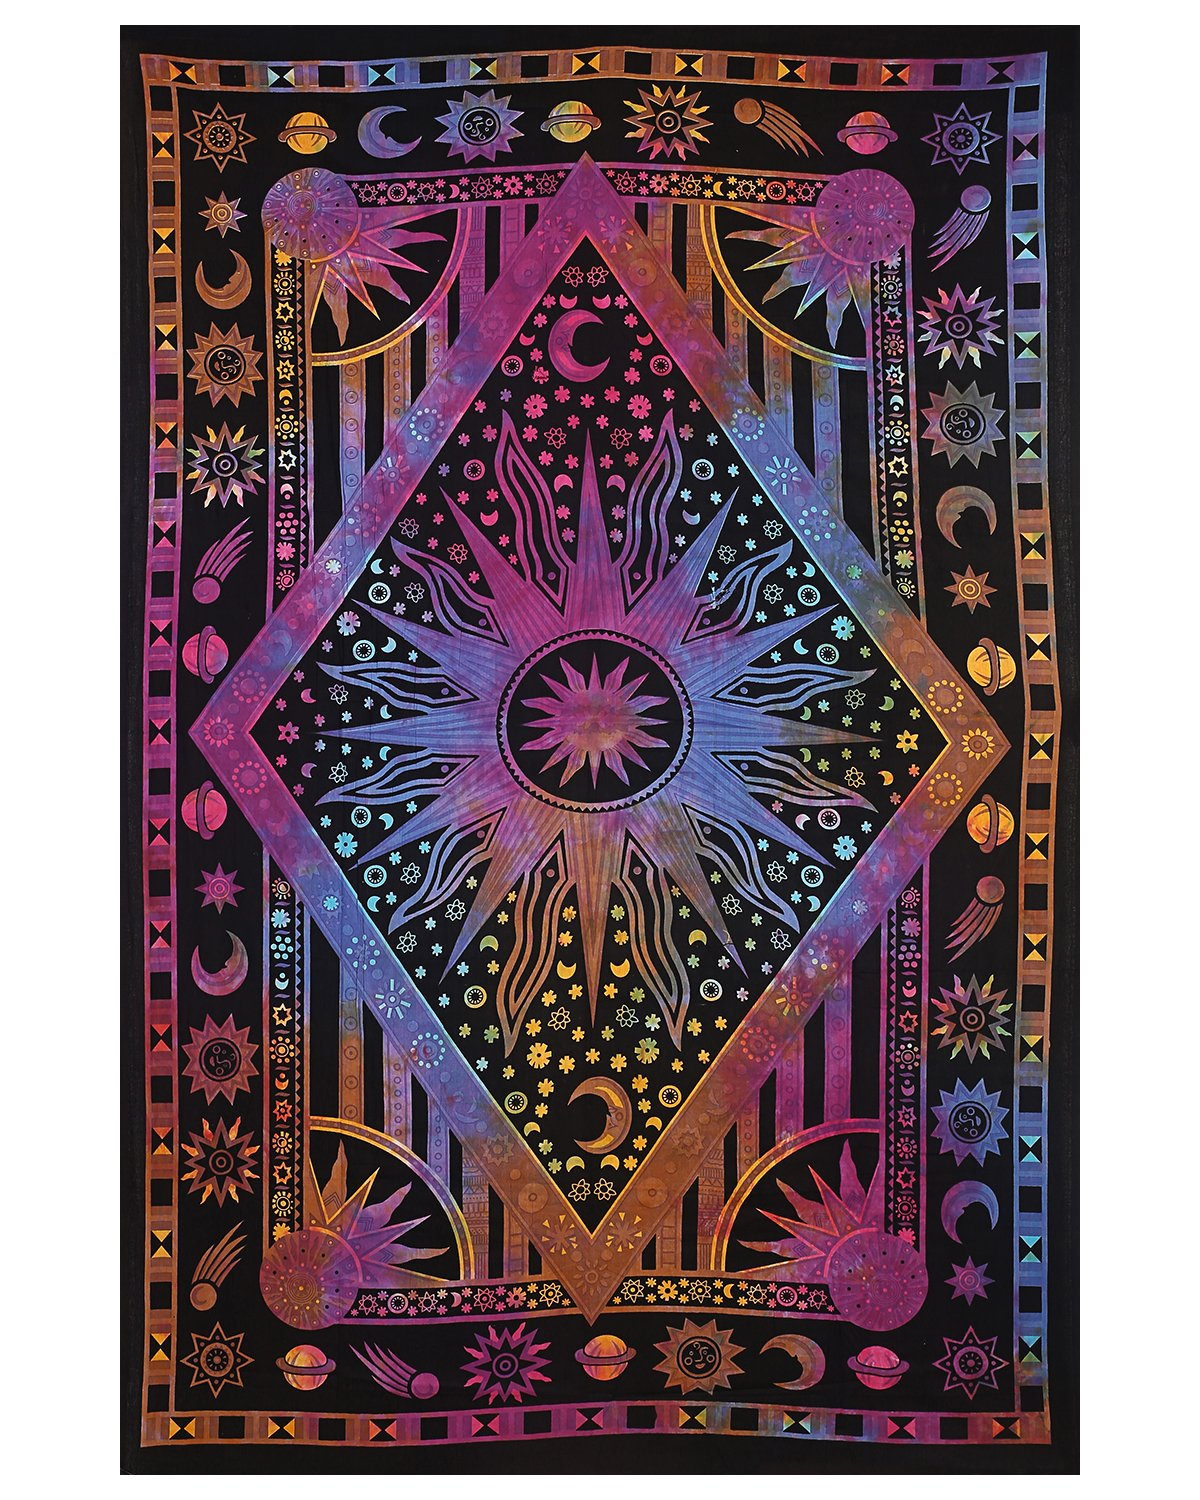 Twin Blue Tie Dye Purple Burning Sun Tapestry Celestial Sun Moon Planet Bohemian Tapestry Wall Hanging Boho Tapestry Hippie Hippy Beach Coverlet Curtain Tapestry